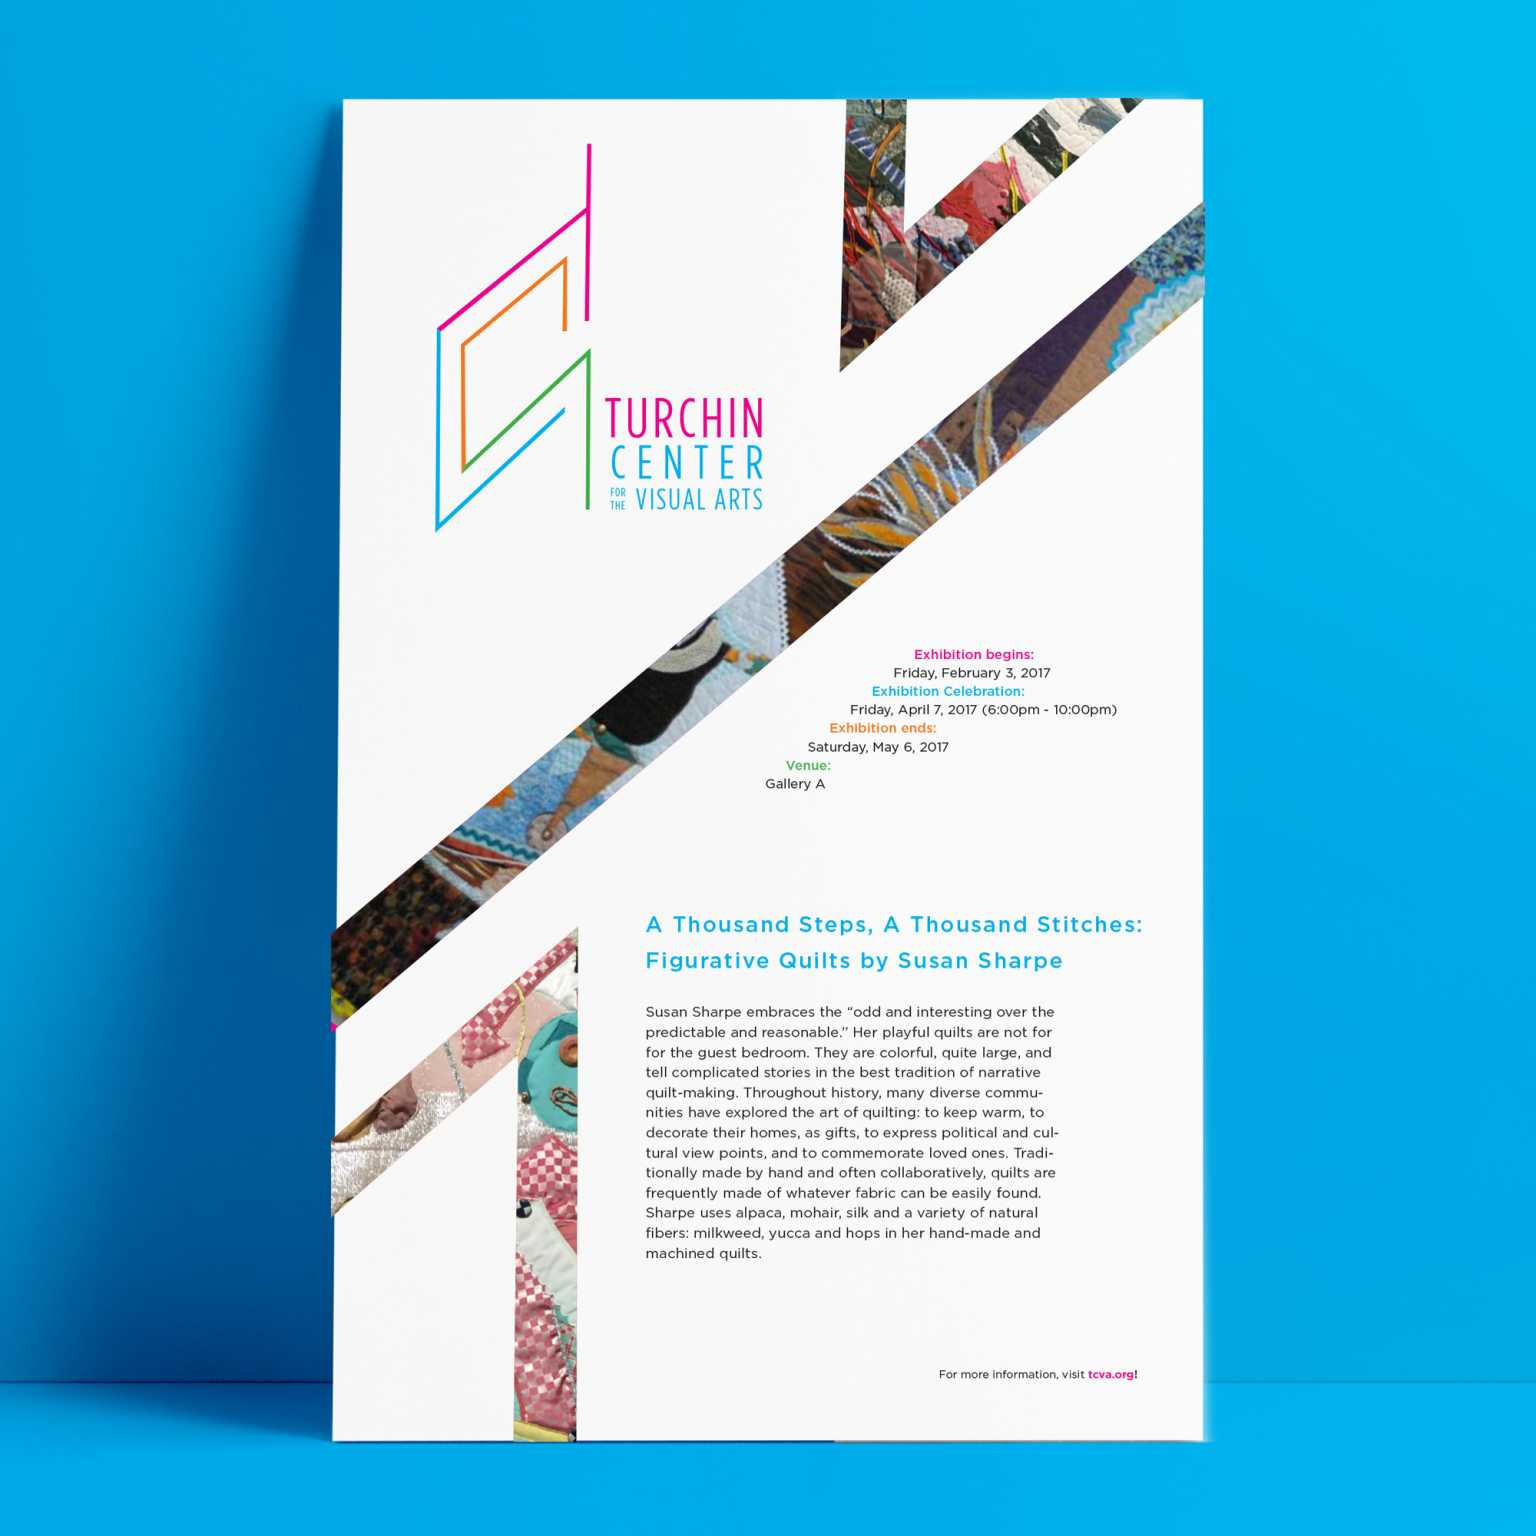 Proposed Poster as part of rebranding for Turchin Center for the Visual Arts